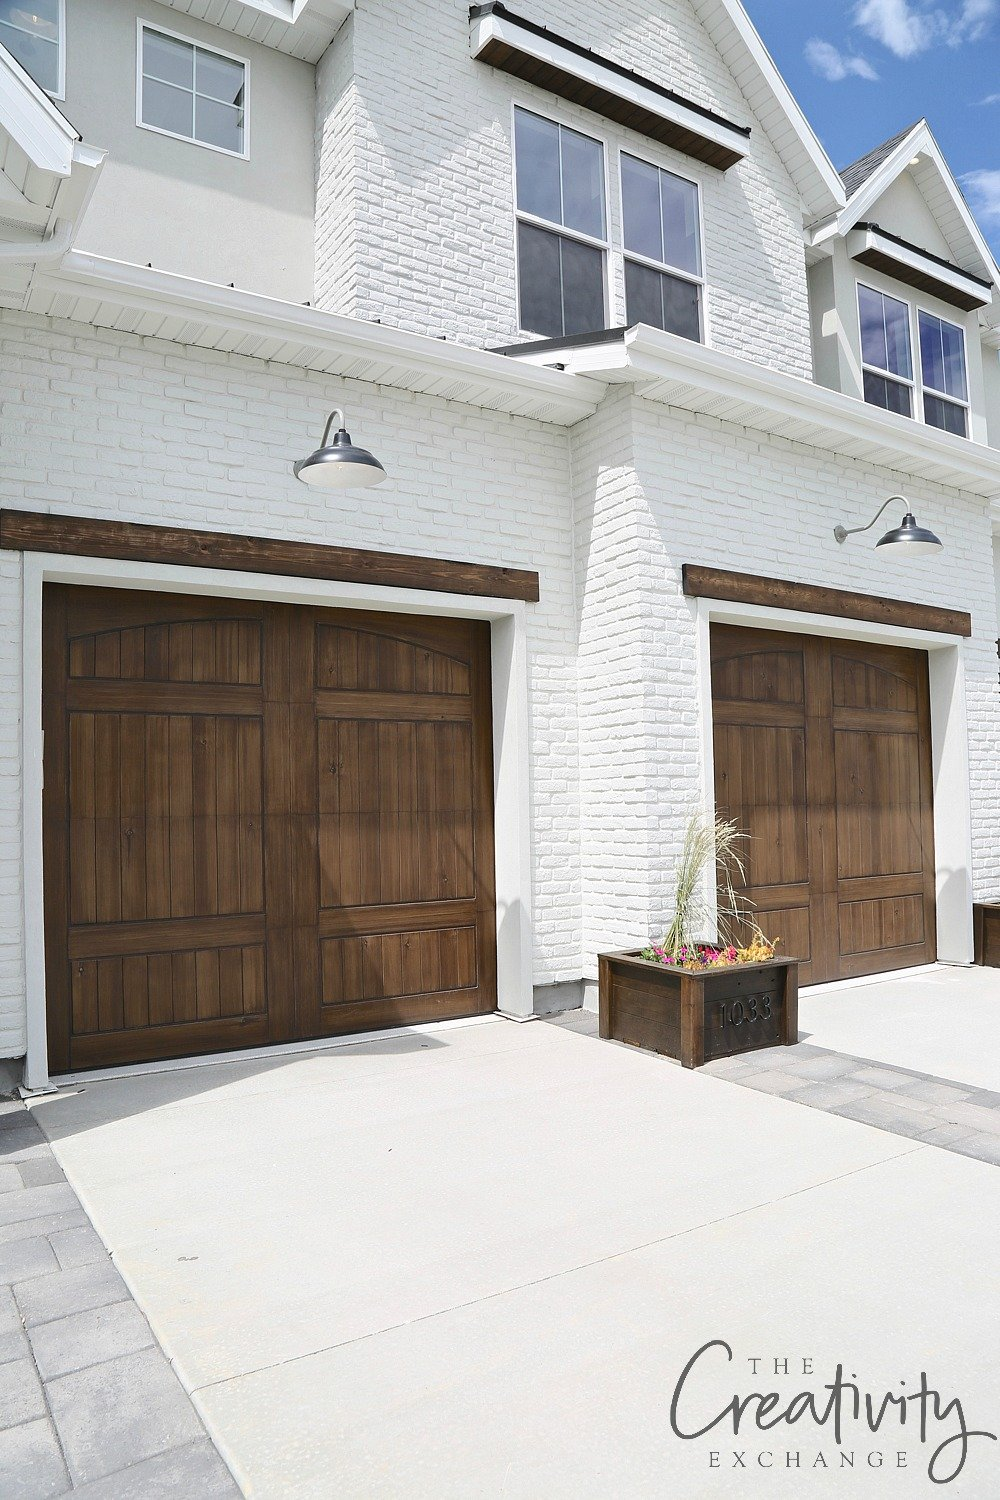 Painted brick exterior with natural wood trim accents and garage doors.